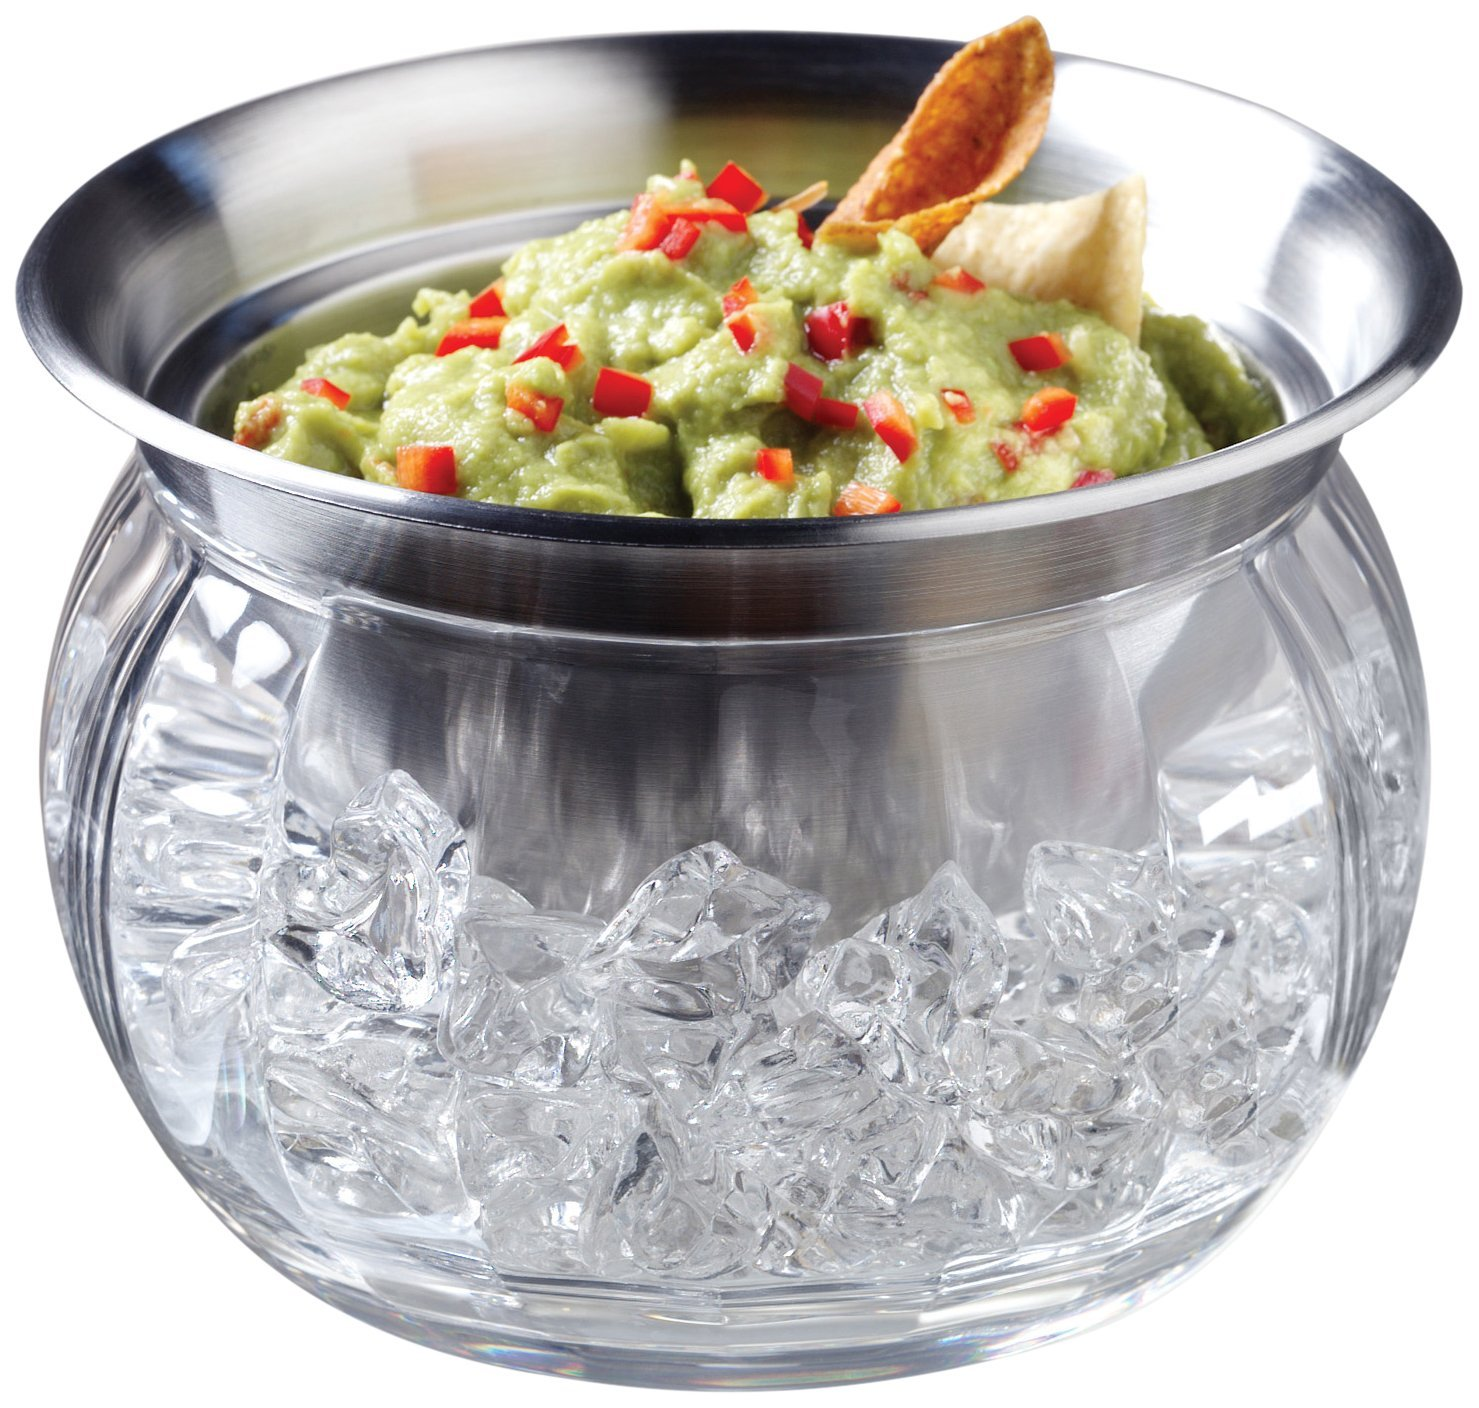 Best Party Bowl Idea EVER - and ICED dip bowl for your party dips